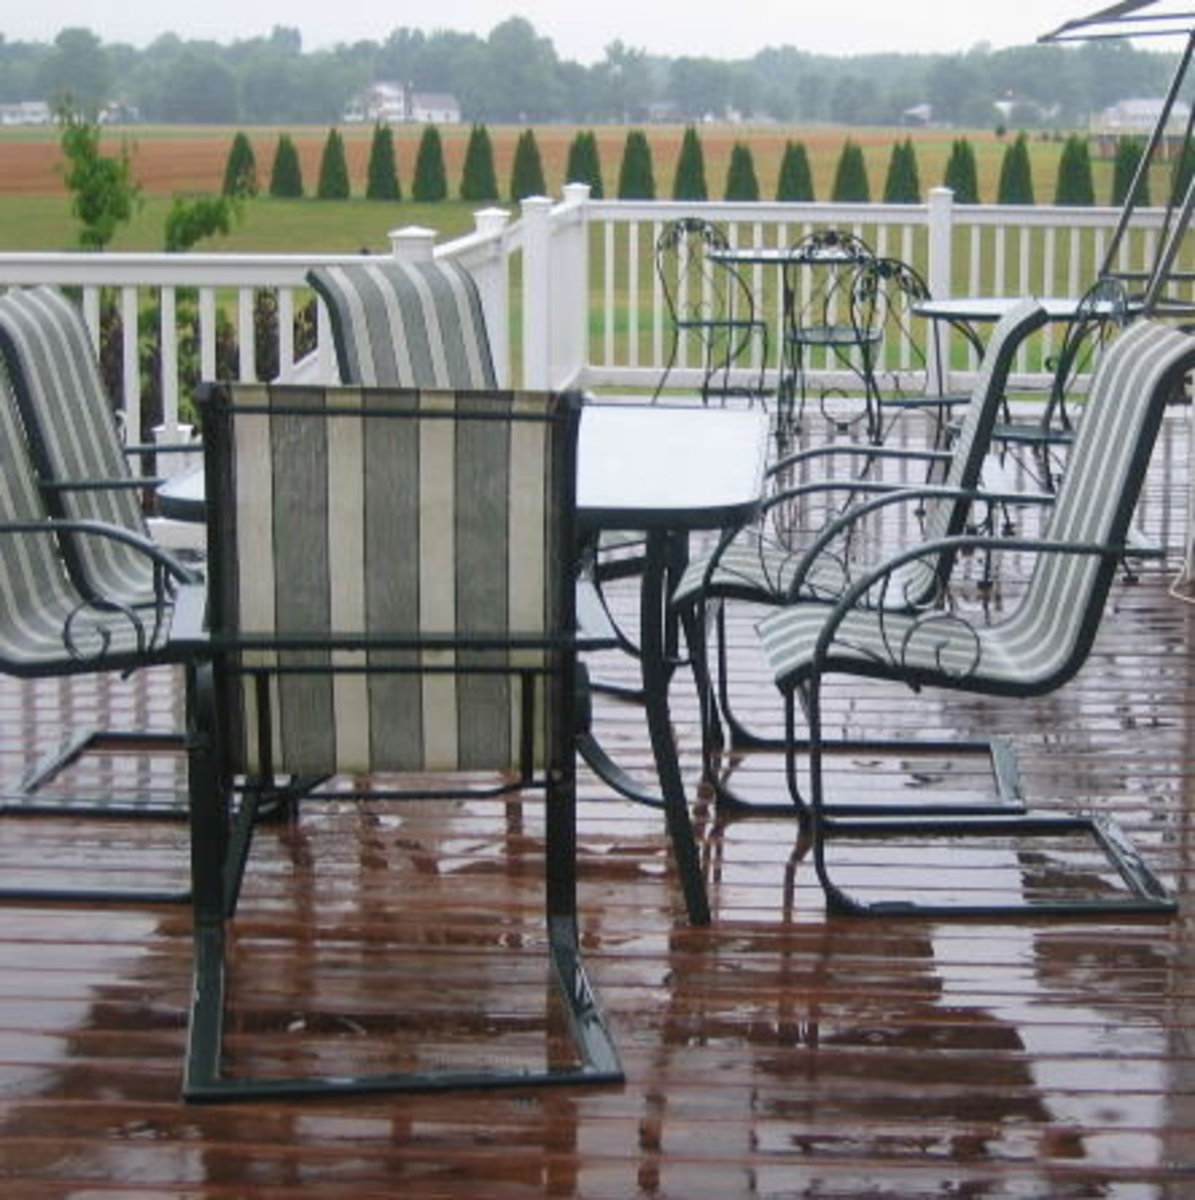 With a view like this, you'll want some outdoor seating at your vacation home. Image courtesy of dee/morguefile.com